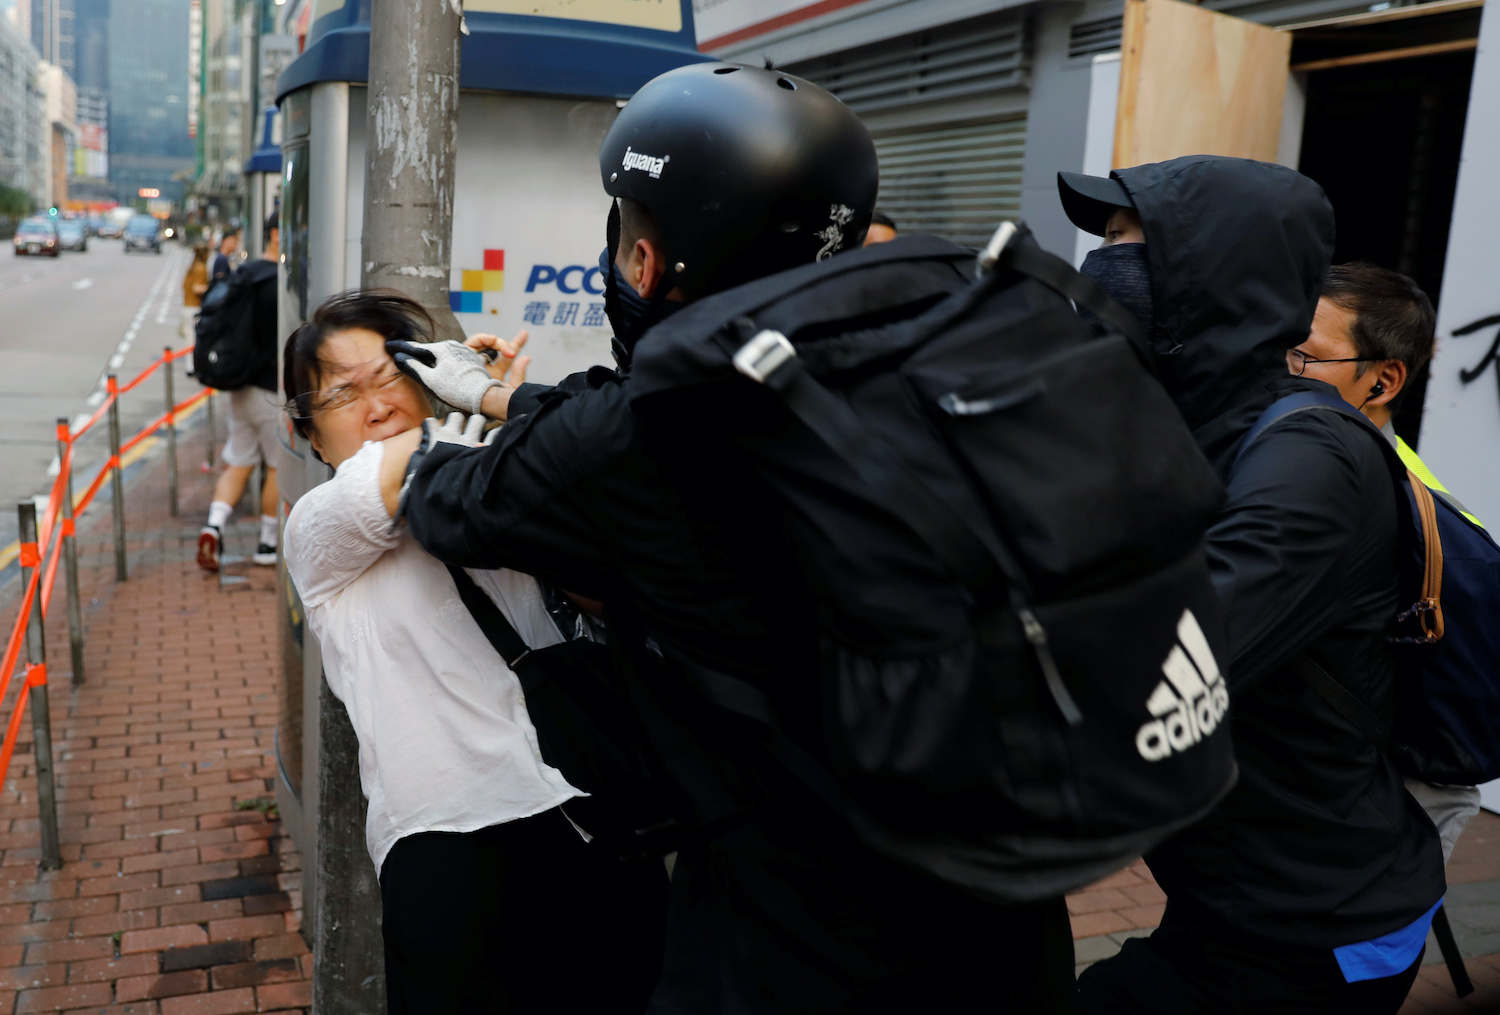 An anti-government demonstrator scuffles with a woman after she tried to remove his mask in Hong Kong on Saturday. (Reuters Photo)